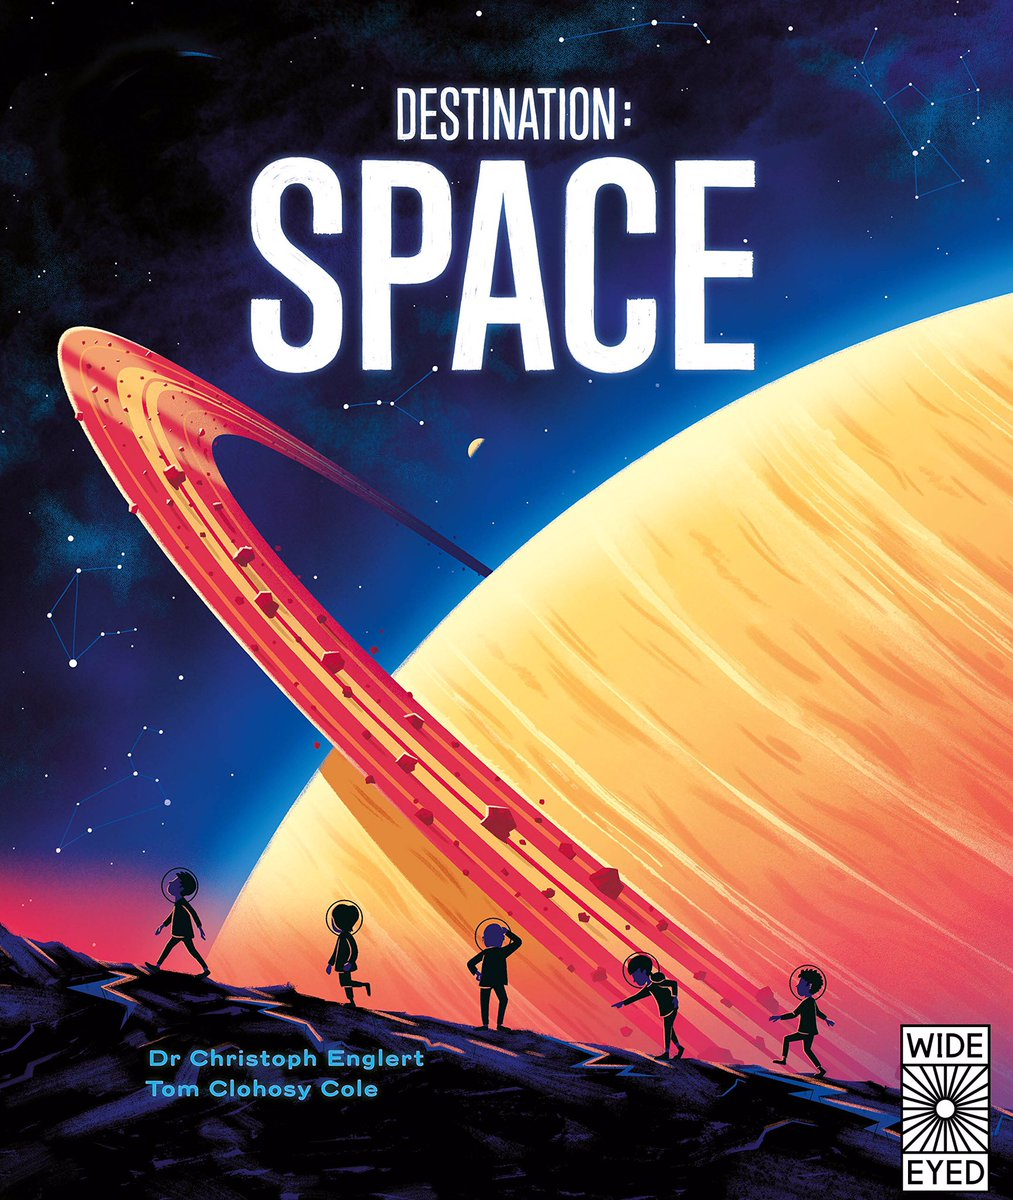 @MissDock_RQT @Mrs_B18 @booksfortopics thereaderteacher.com/year4fiction Here you go 👍📚 If you're looking for more to do with Space, try these...